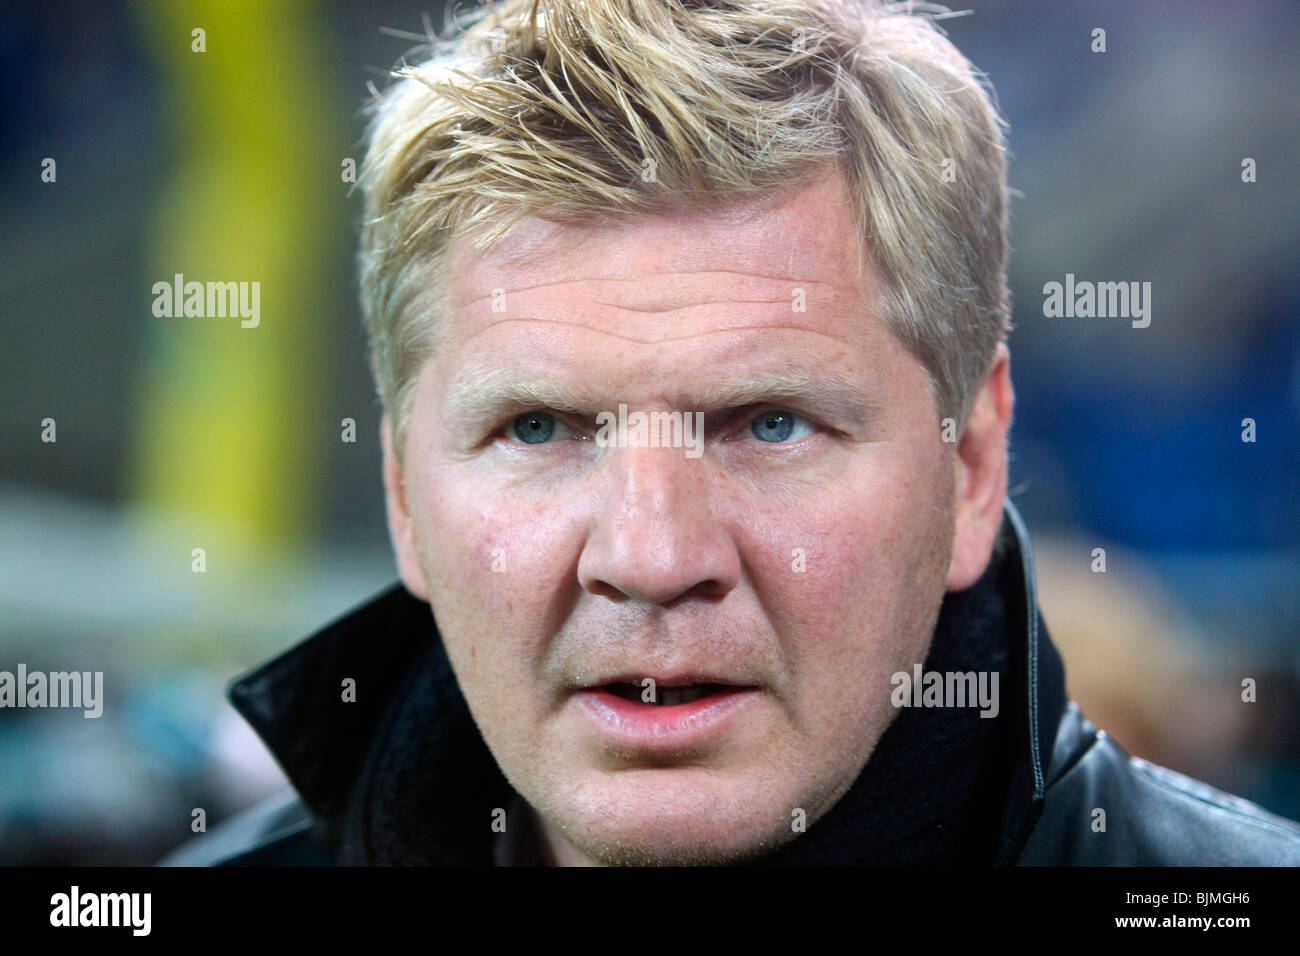 Former professional soccer player Stefan Effenberg, Sinsheim, Baden-Wuerttemberg, Germany, Europe - Stock Image